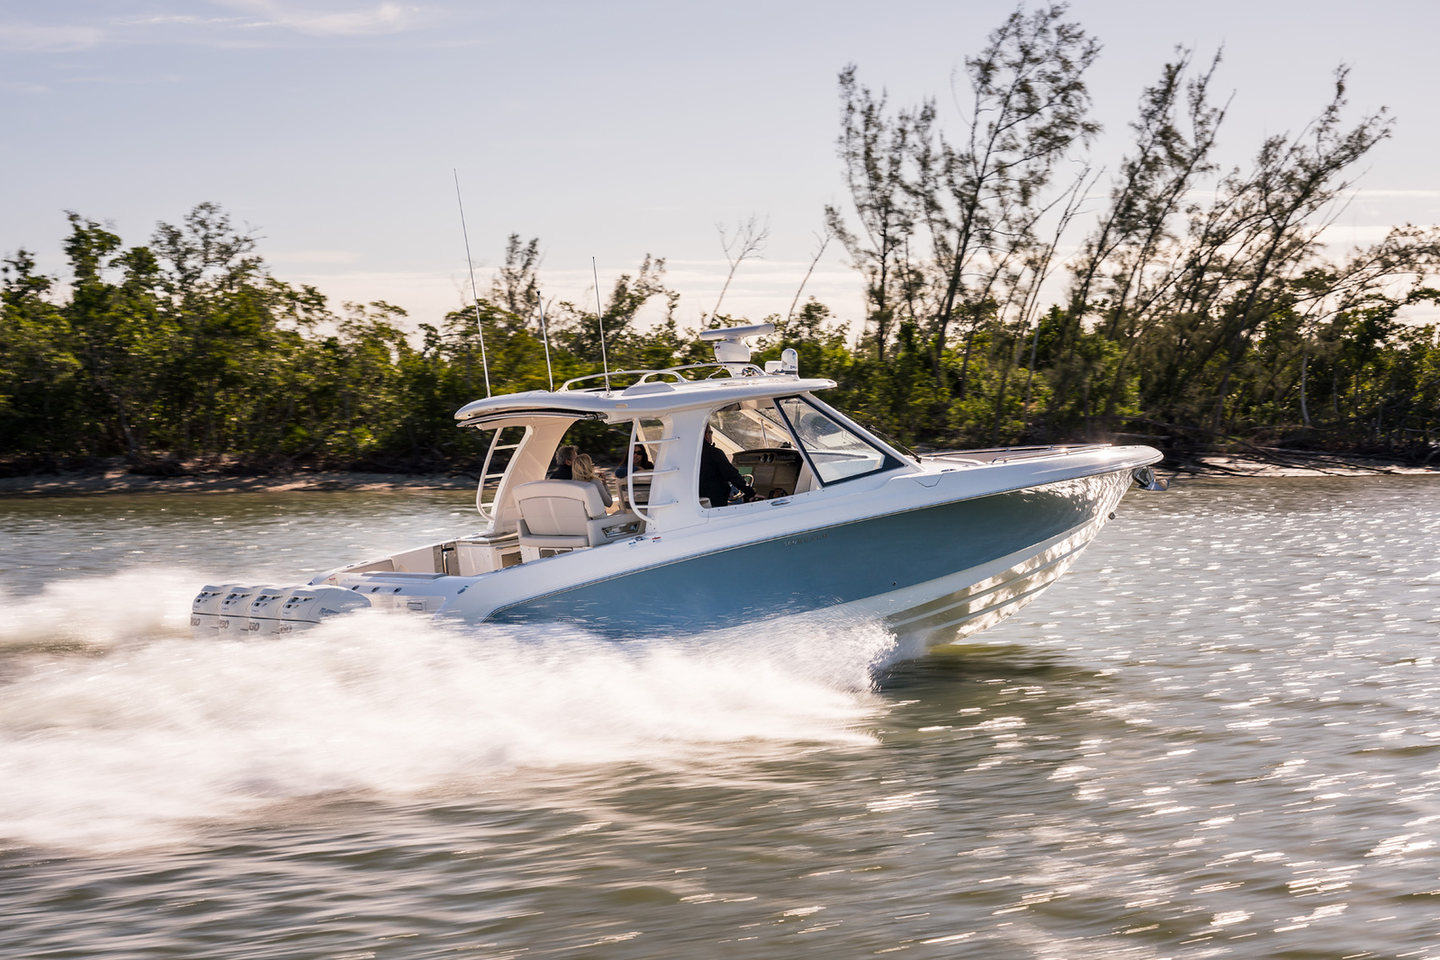 360 VR Virtual Tours of the Boston Whaler 380 Realm – VRCLOUD